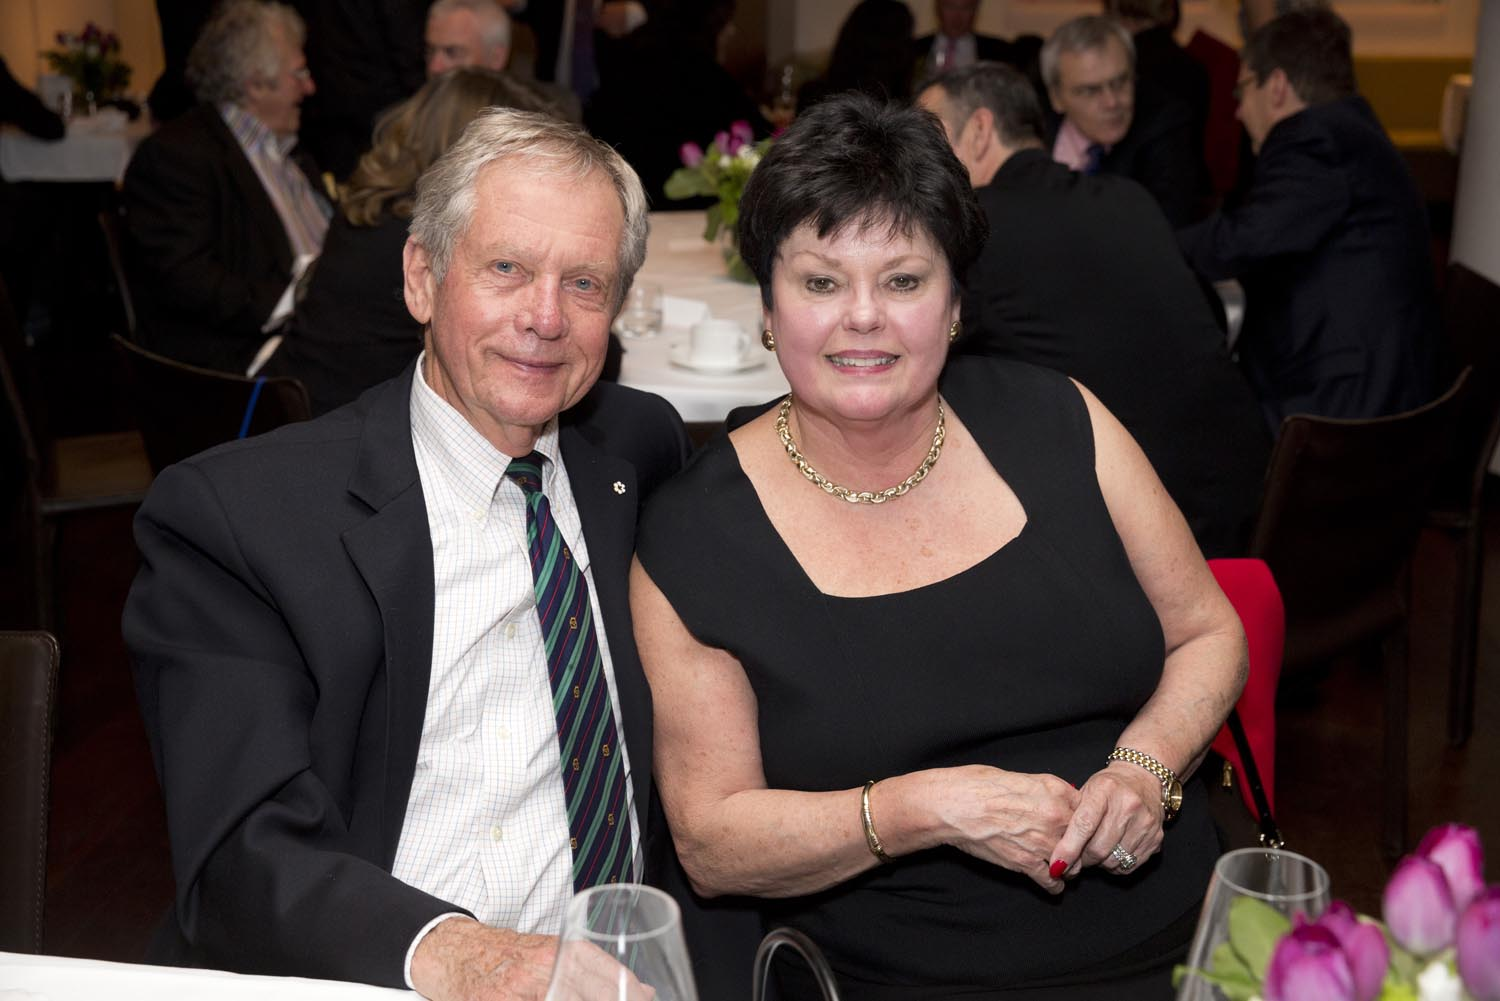 Mr. Robert Bateman and Mrs. Susan Gosevitz